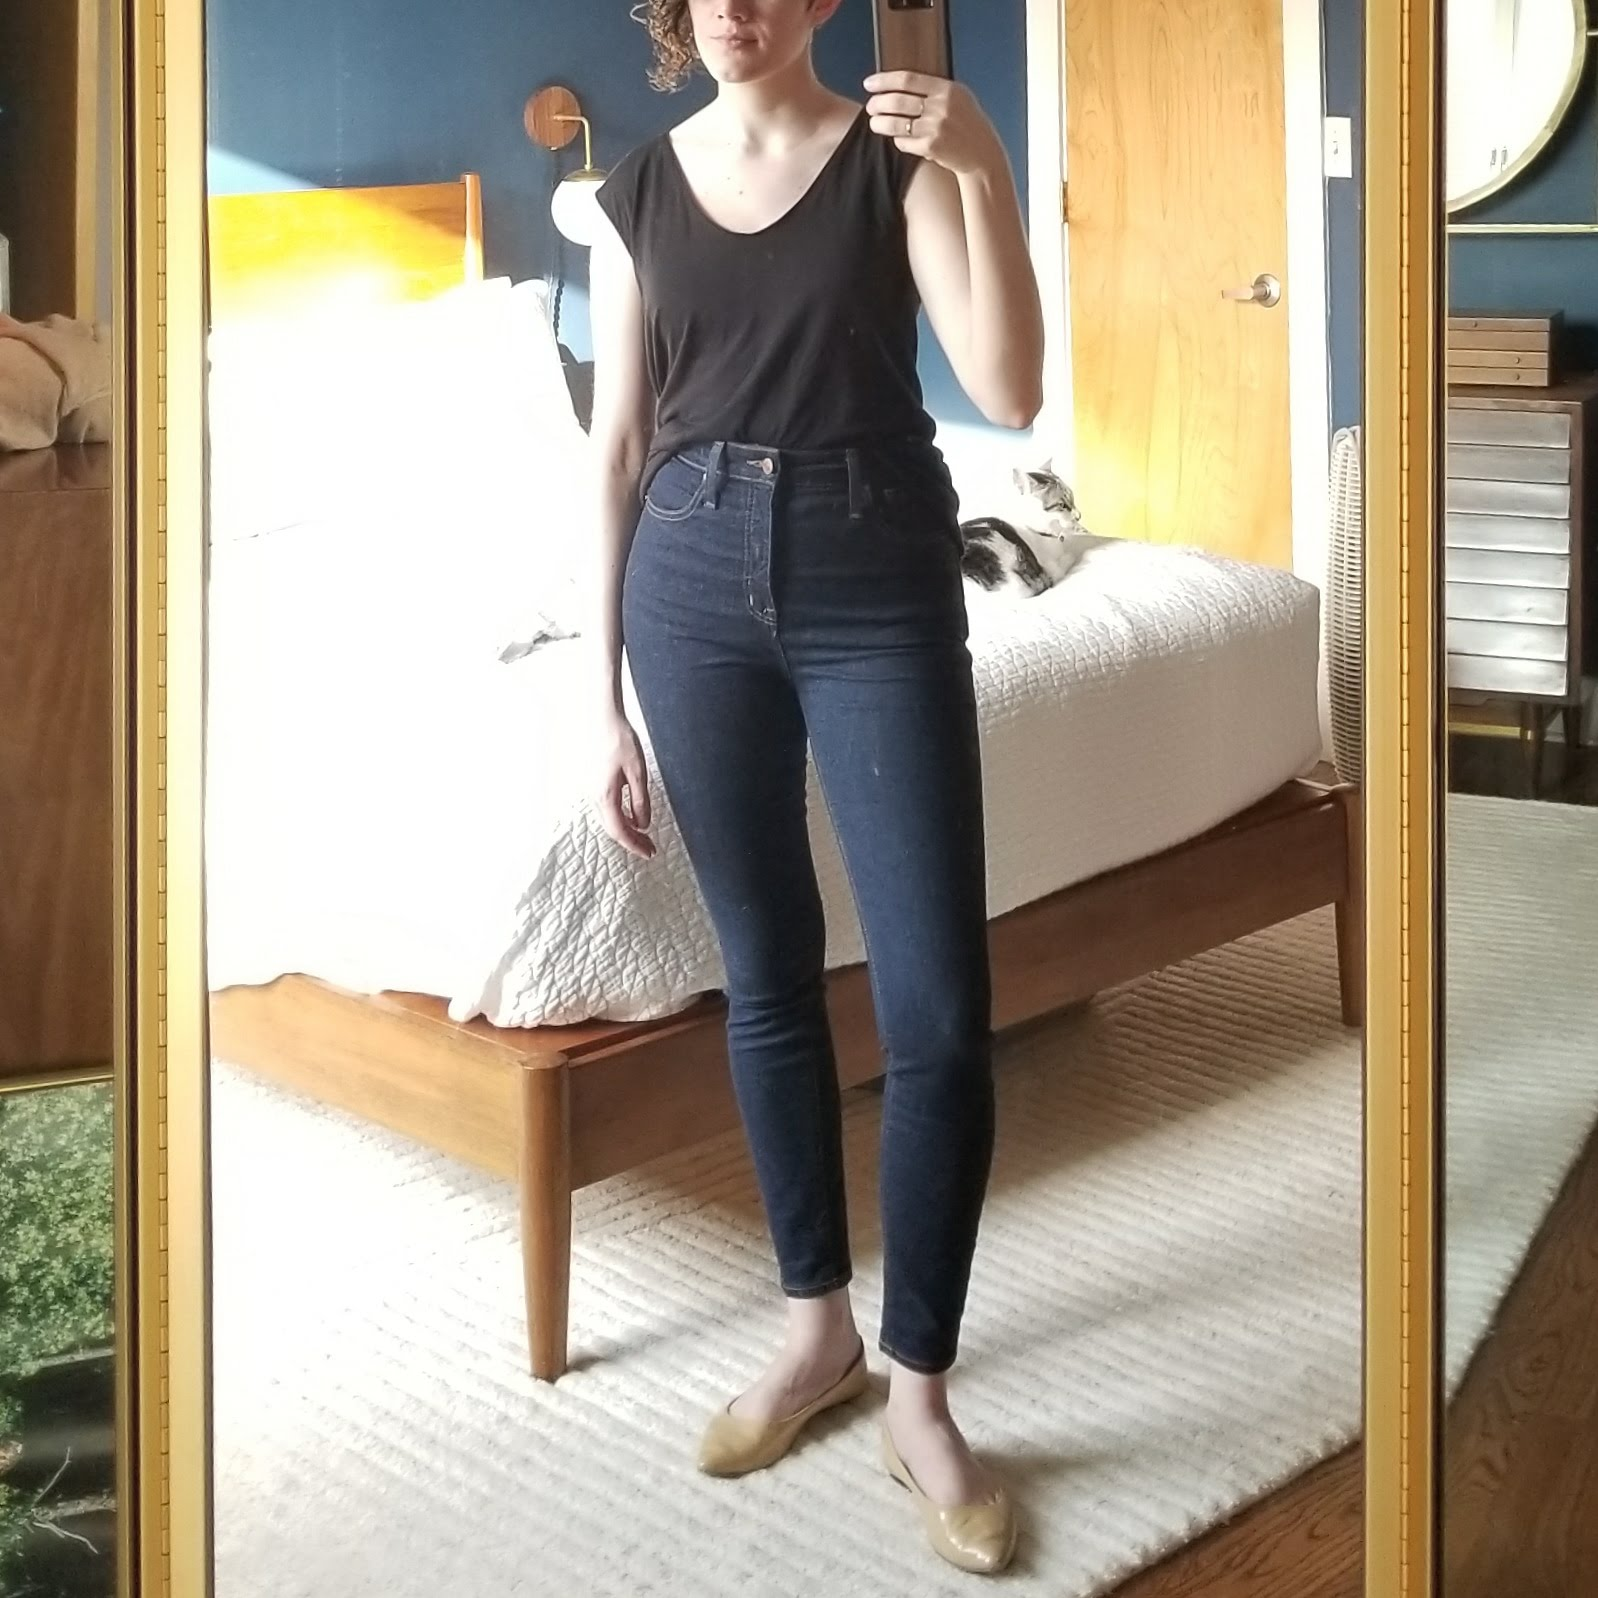 Thursday - March 29, 2018Work from home day! Super basic look. I didn't even wear these shoes because I wasn't leaving the house, I just put them on for the outfit of the day picture, haha. These jeans are a new acquisition from Poshmark — they're the Madewell curvy fit high rise skinny jeans. I'm planning on selling my current pair of regular fit skinny jeans so it's an even swap. After both my sisters raved about the curvy fit, I tracked down a pair secondhand and am really happy with them. You probably wouldn't look at me and say